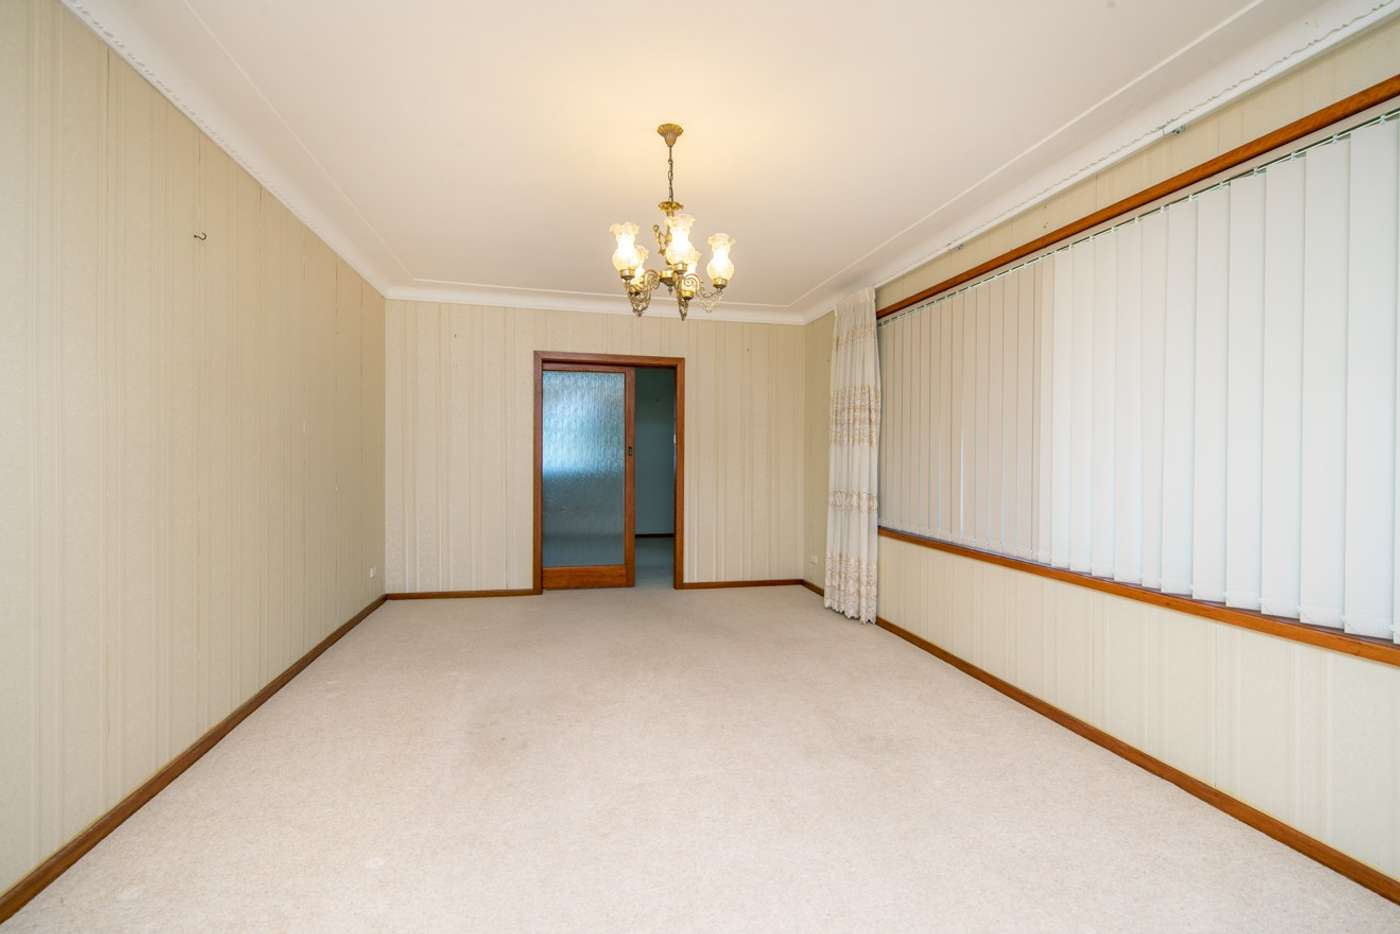 Sixth view of Homely house listing, 7 Penelope Place, Kotara NSW 2289